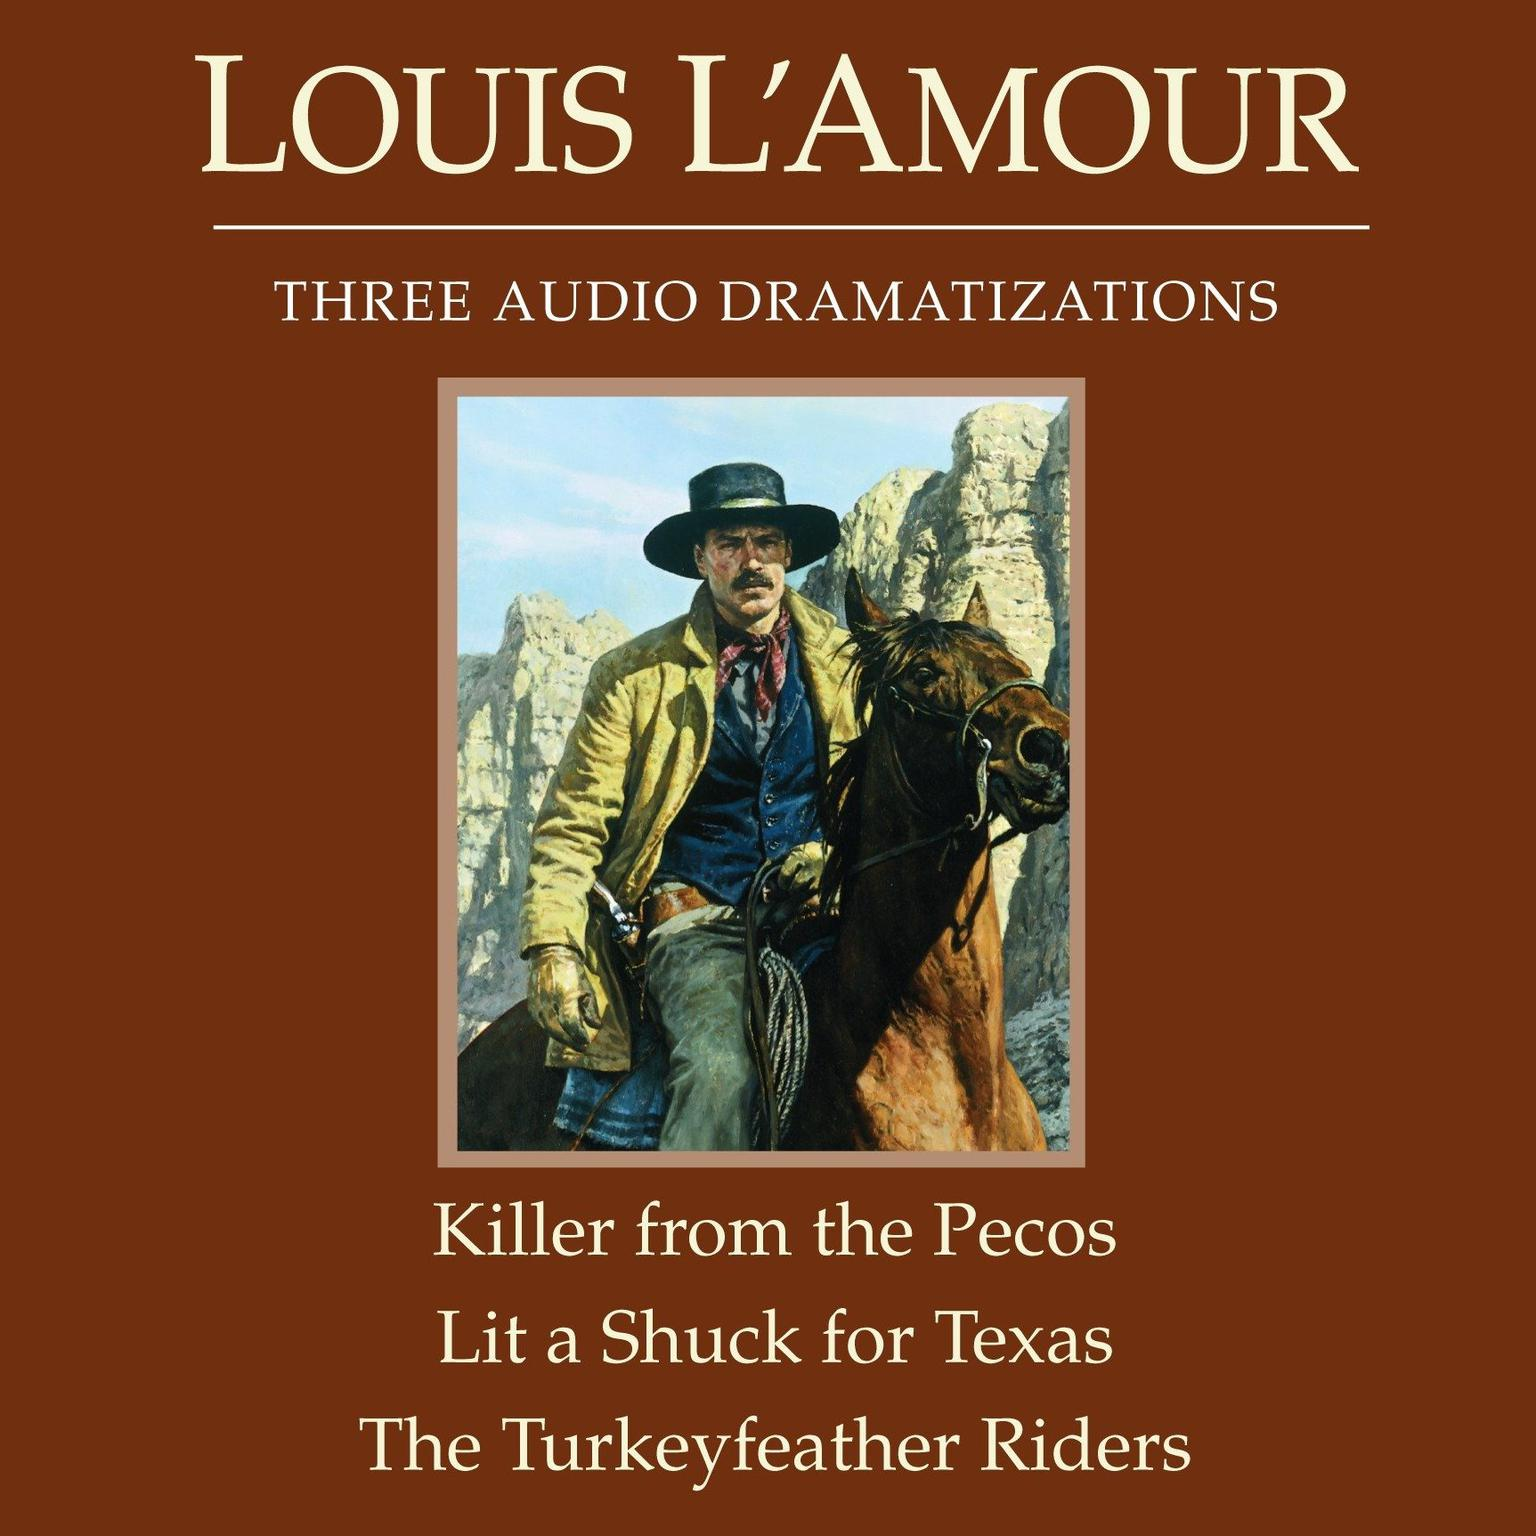 Printable The Killer from the Pecos / Lit a Shuck for Texas / The Turkeyfeather Riders Audiobook Cover Art